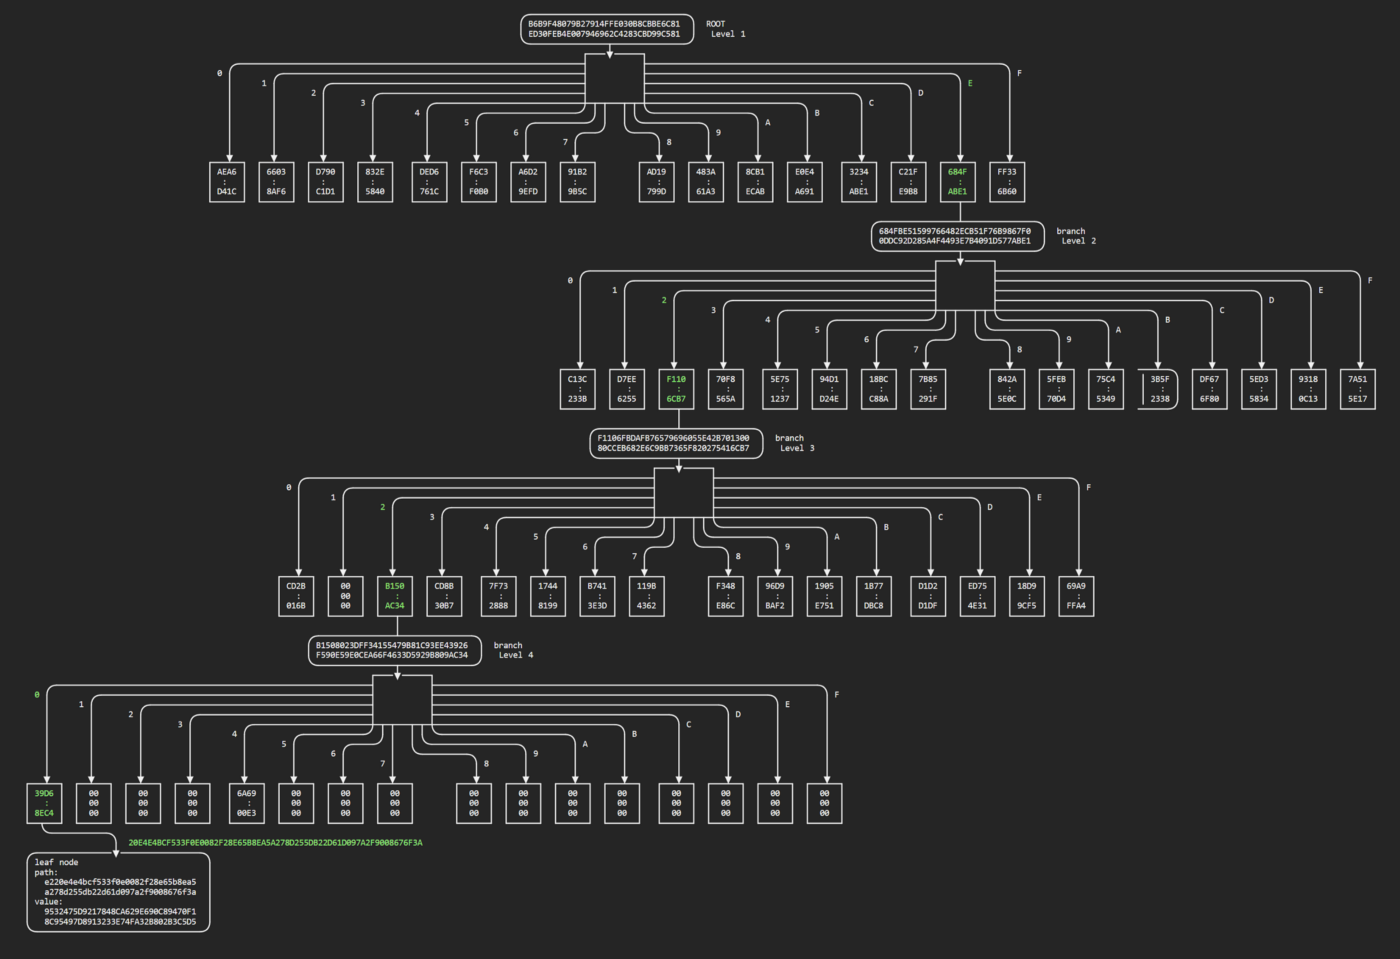 Merkle tree path: 16 branches at first level, branch taken at 0xe, 16 branches at second level, branch taken at 0x2, 16 branches at 3rd level, branch taken at 0x0, finally a leaf.